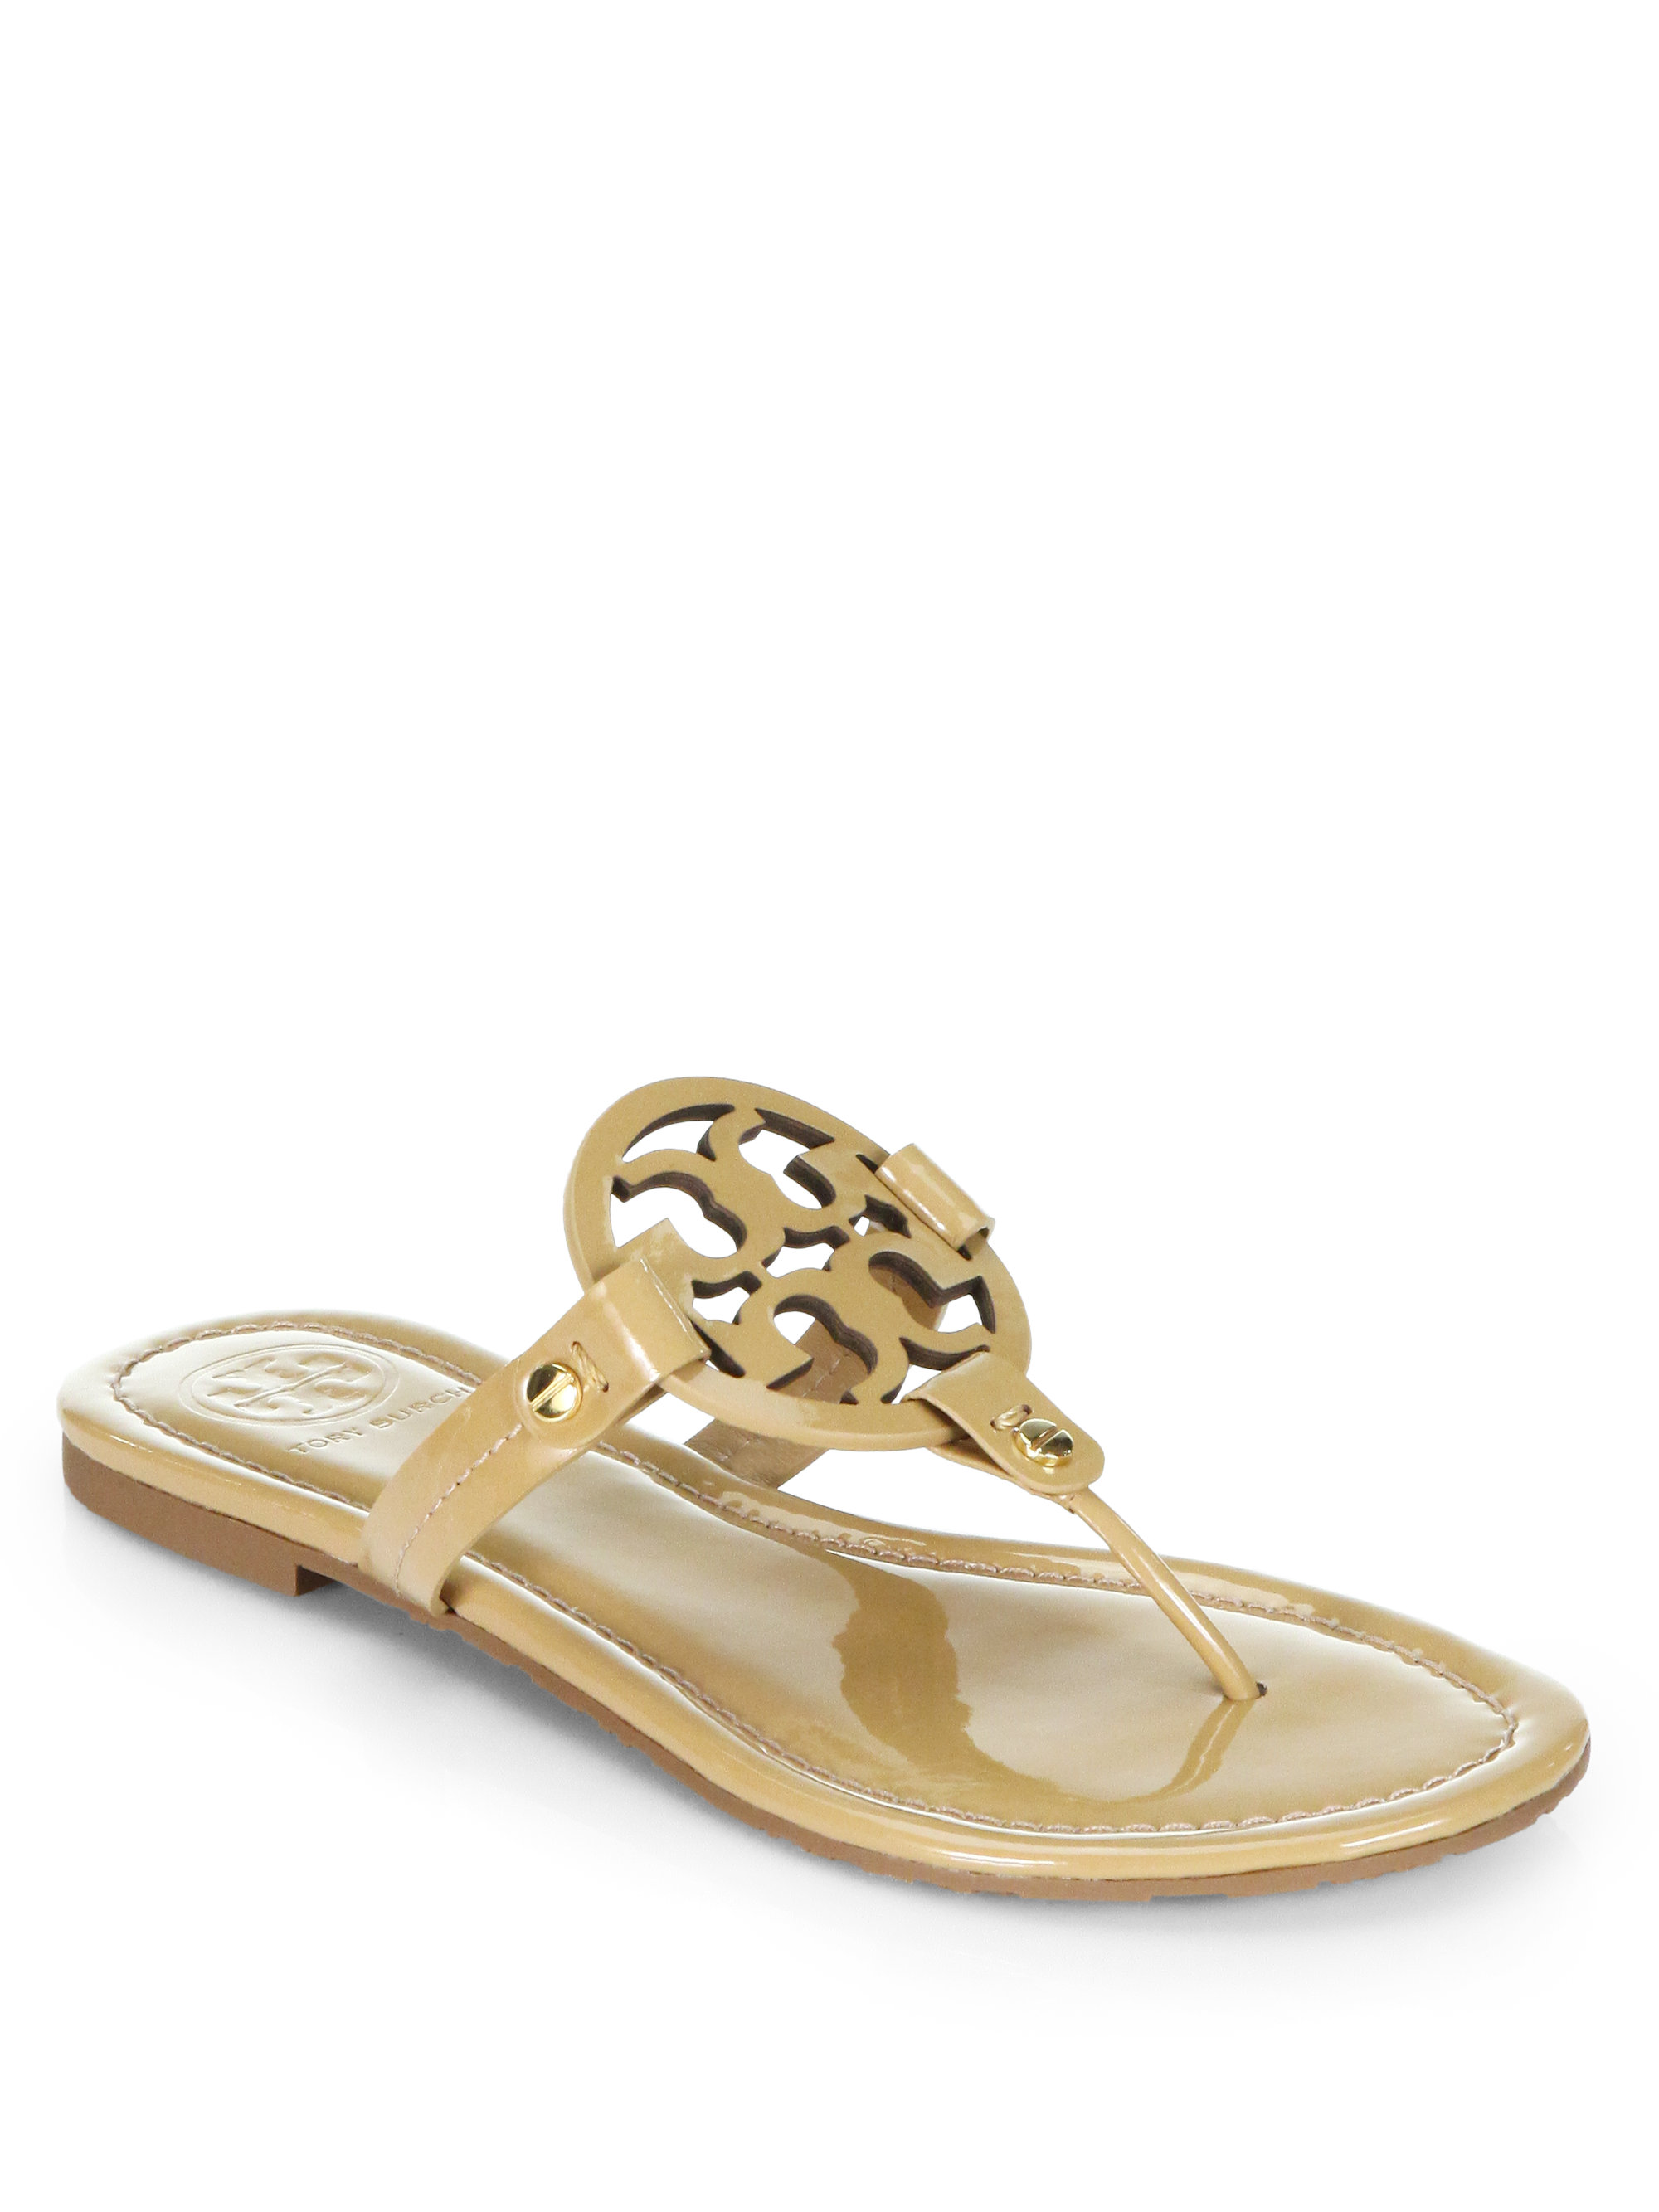 4724167767bf9 Lyst - Tory Burch Miller Patent Leather Thong Sandals in Natural